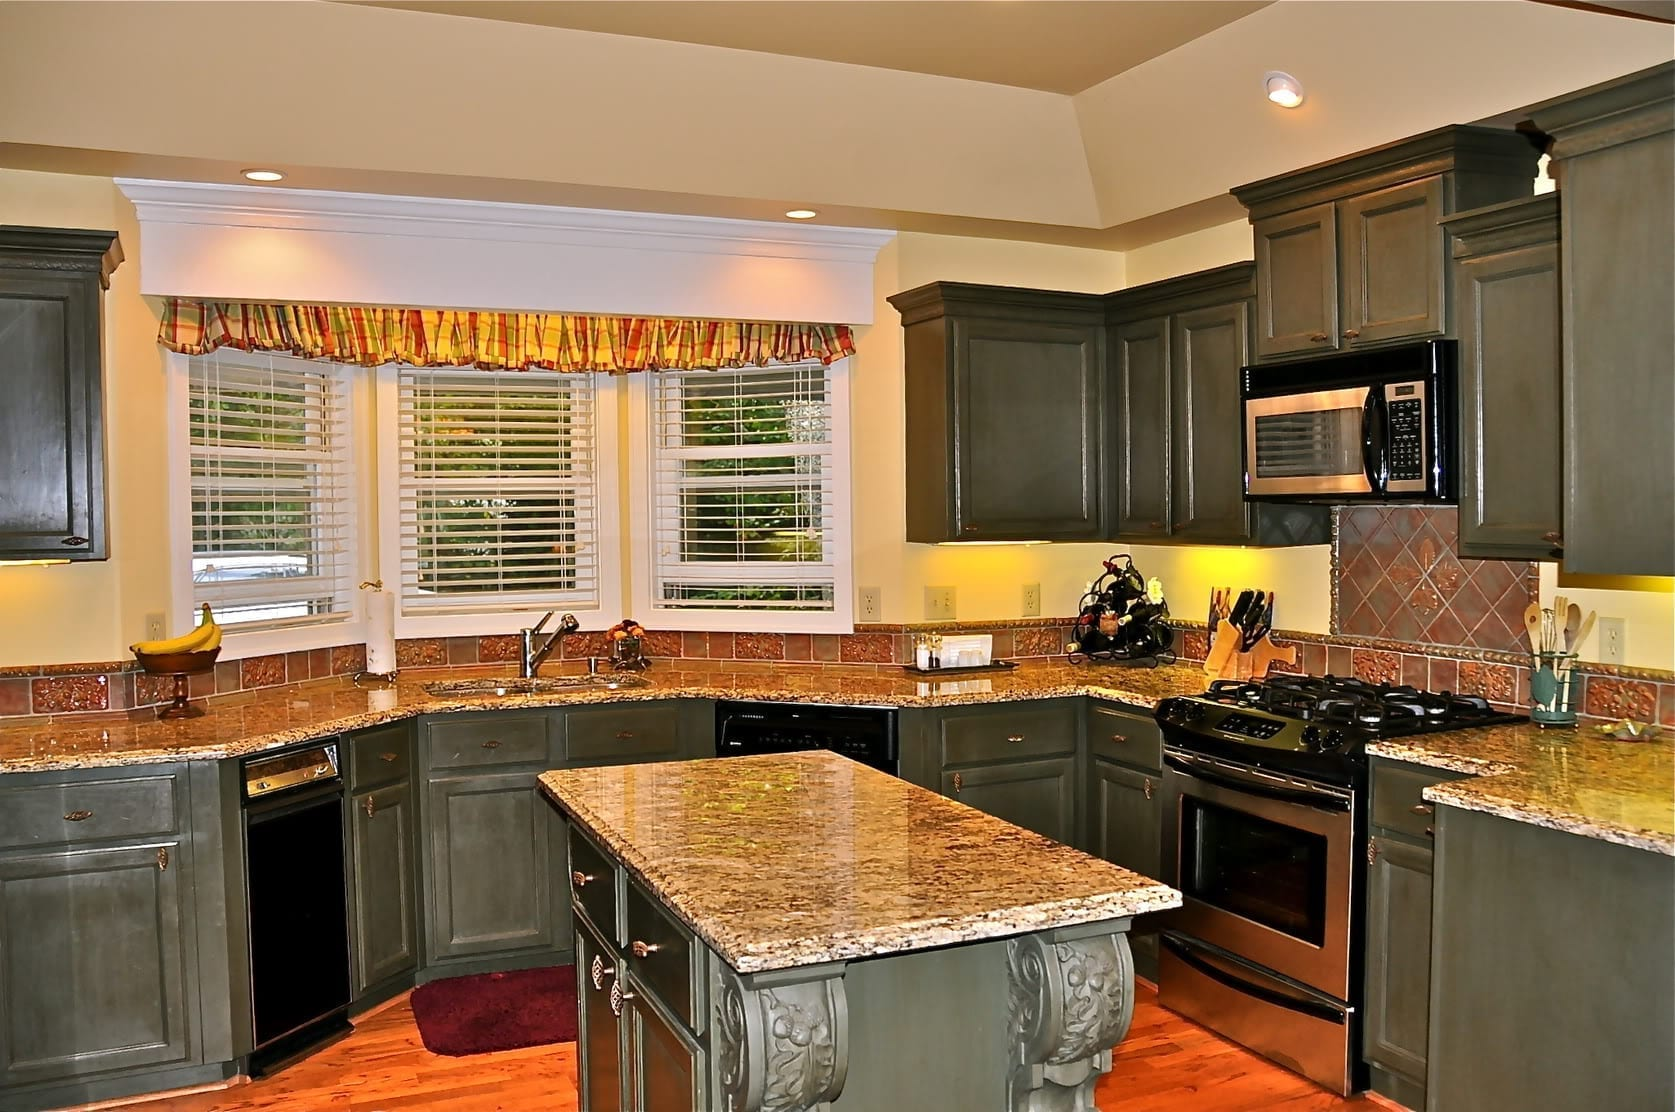 kitchen remodel kitchen remodel ideas images kitchen remodel 10 Sell or Remodel Get The Most For The Dollar